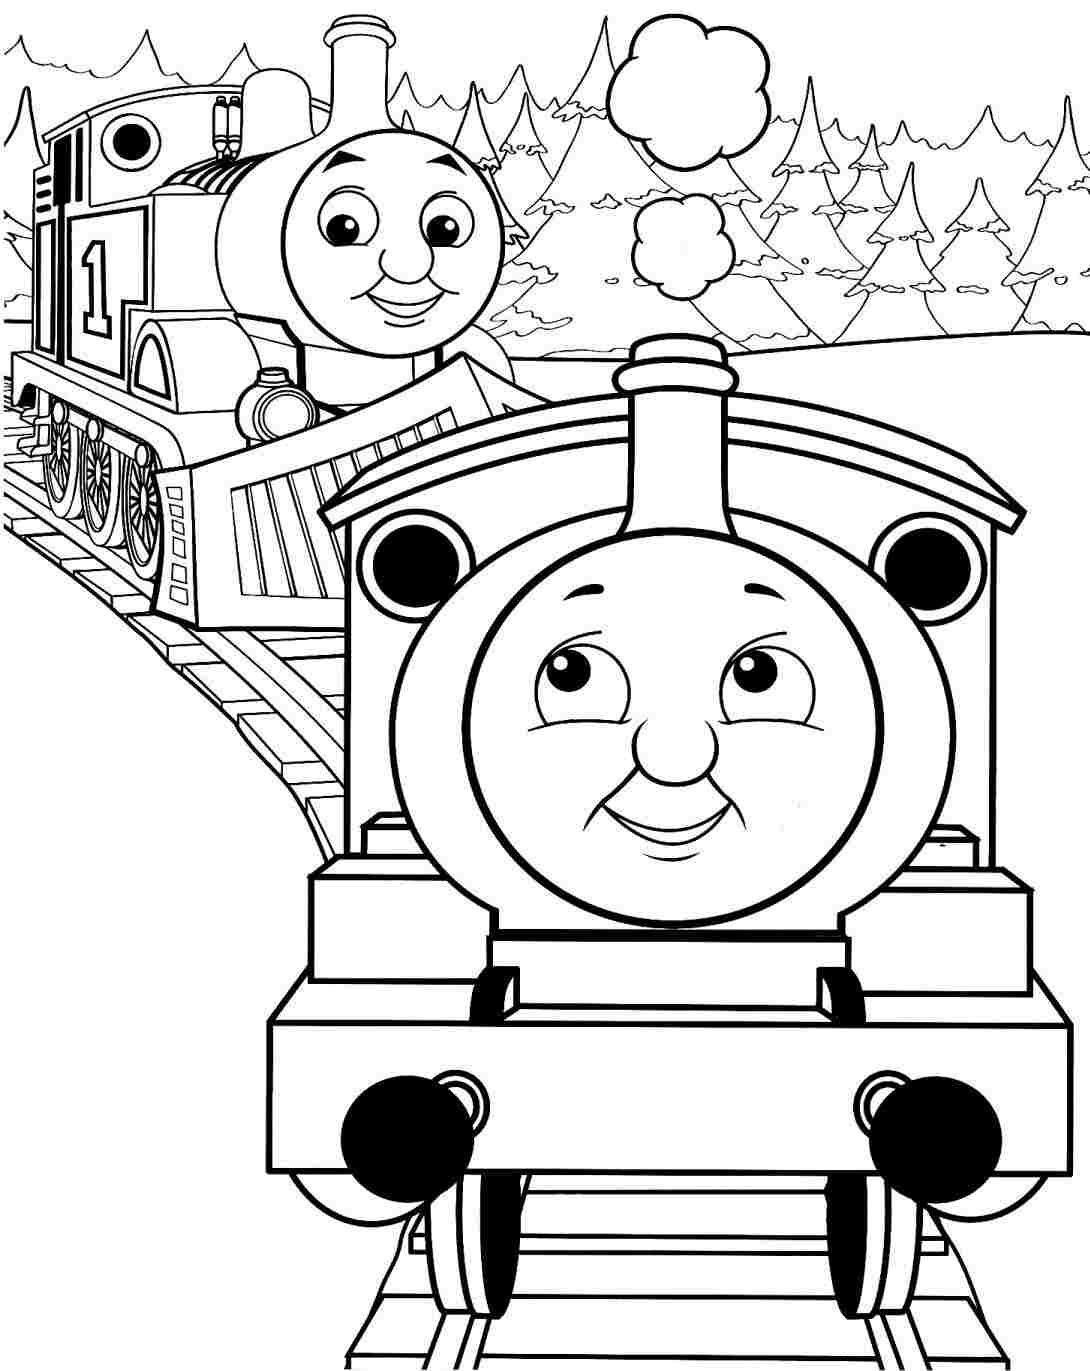 Simple Thomas The Train Coloring Pages · Thomas The Train Coloring